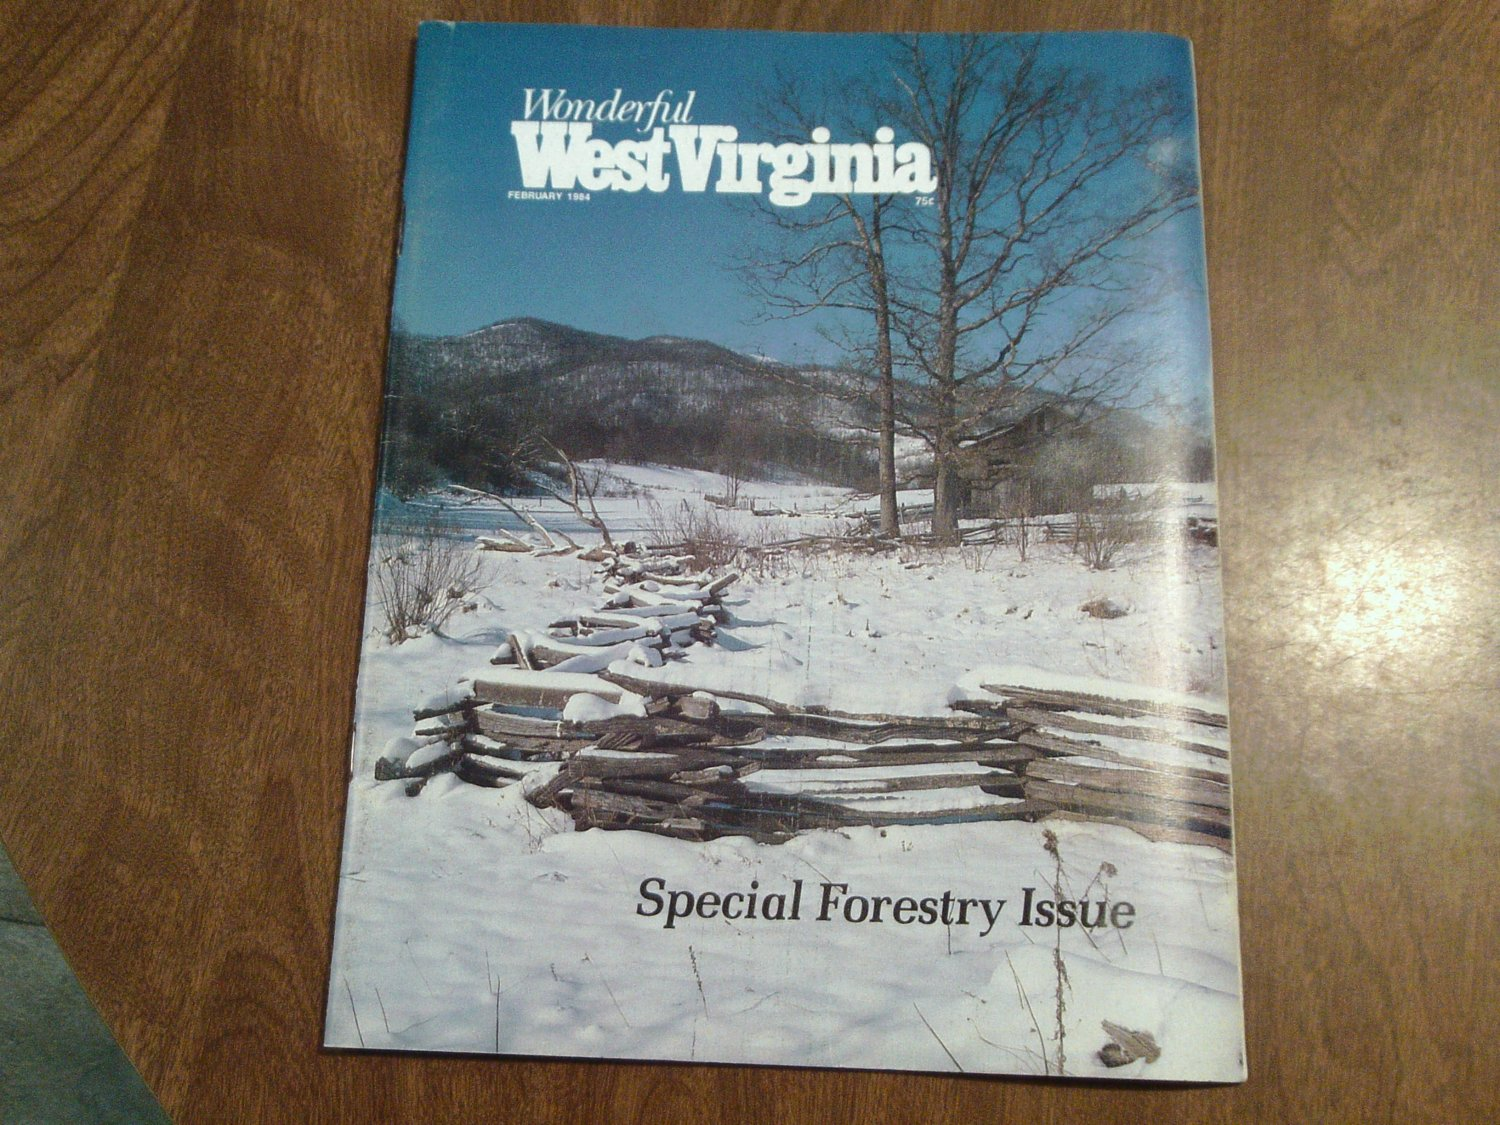 Wonderful West Virginia February 1984 Volume 47 No. 12 Special Forestry Issue (C6)